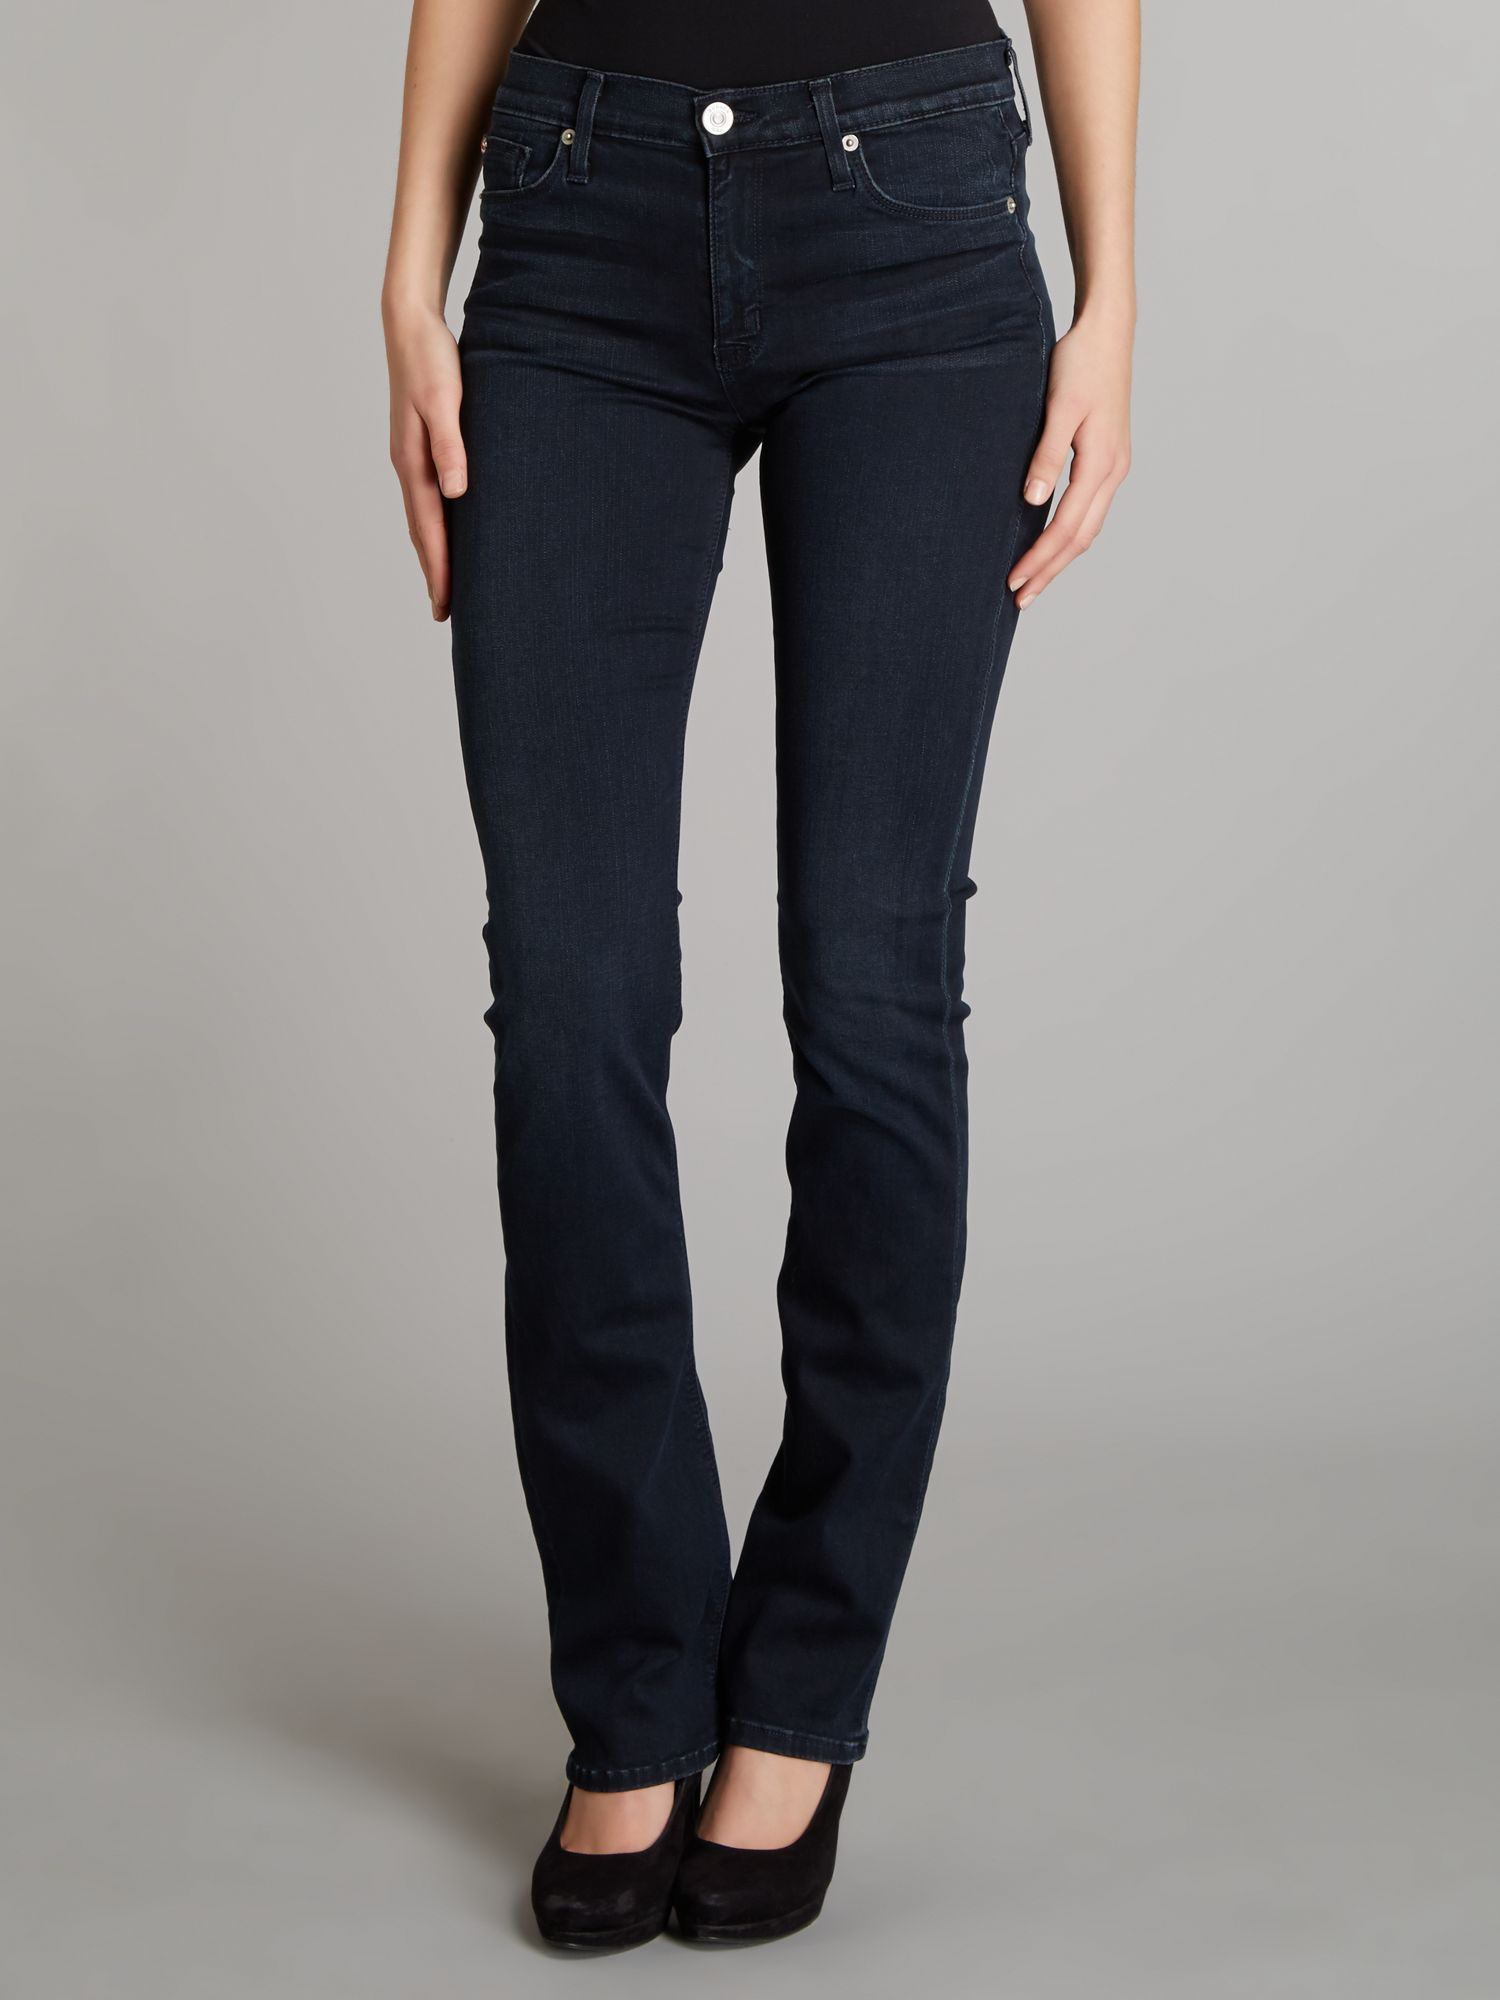 Elle baby bootcut jeans in Unseen